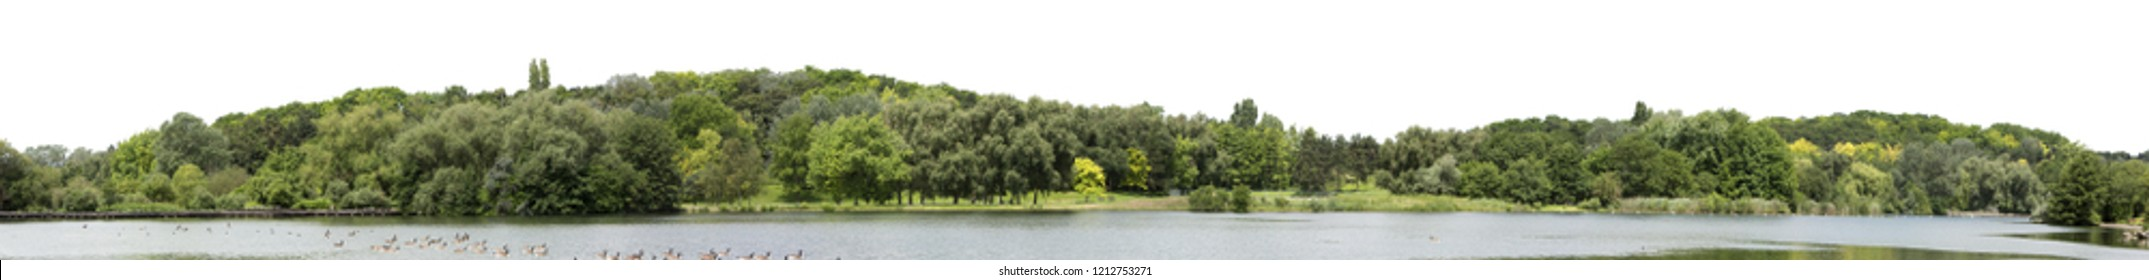 Very high definition Treeline isolated on a white background